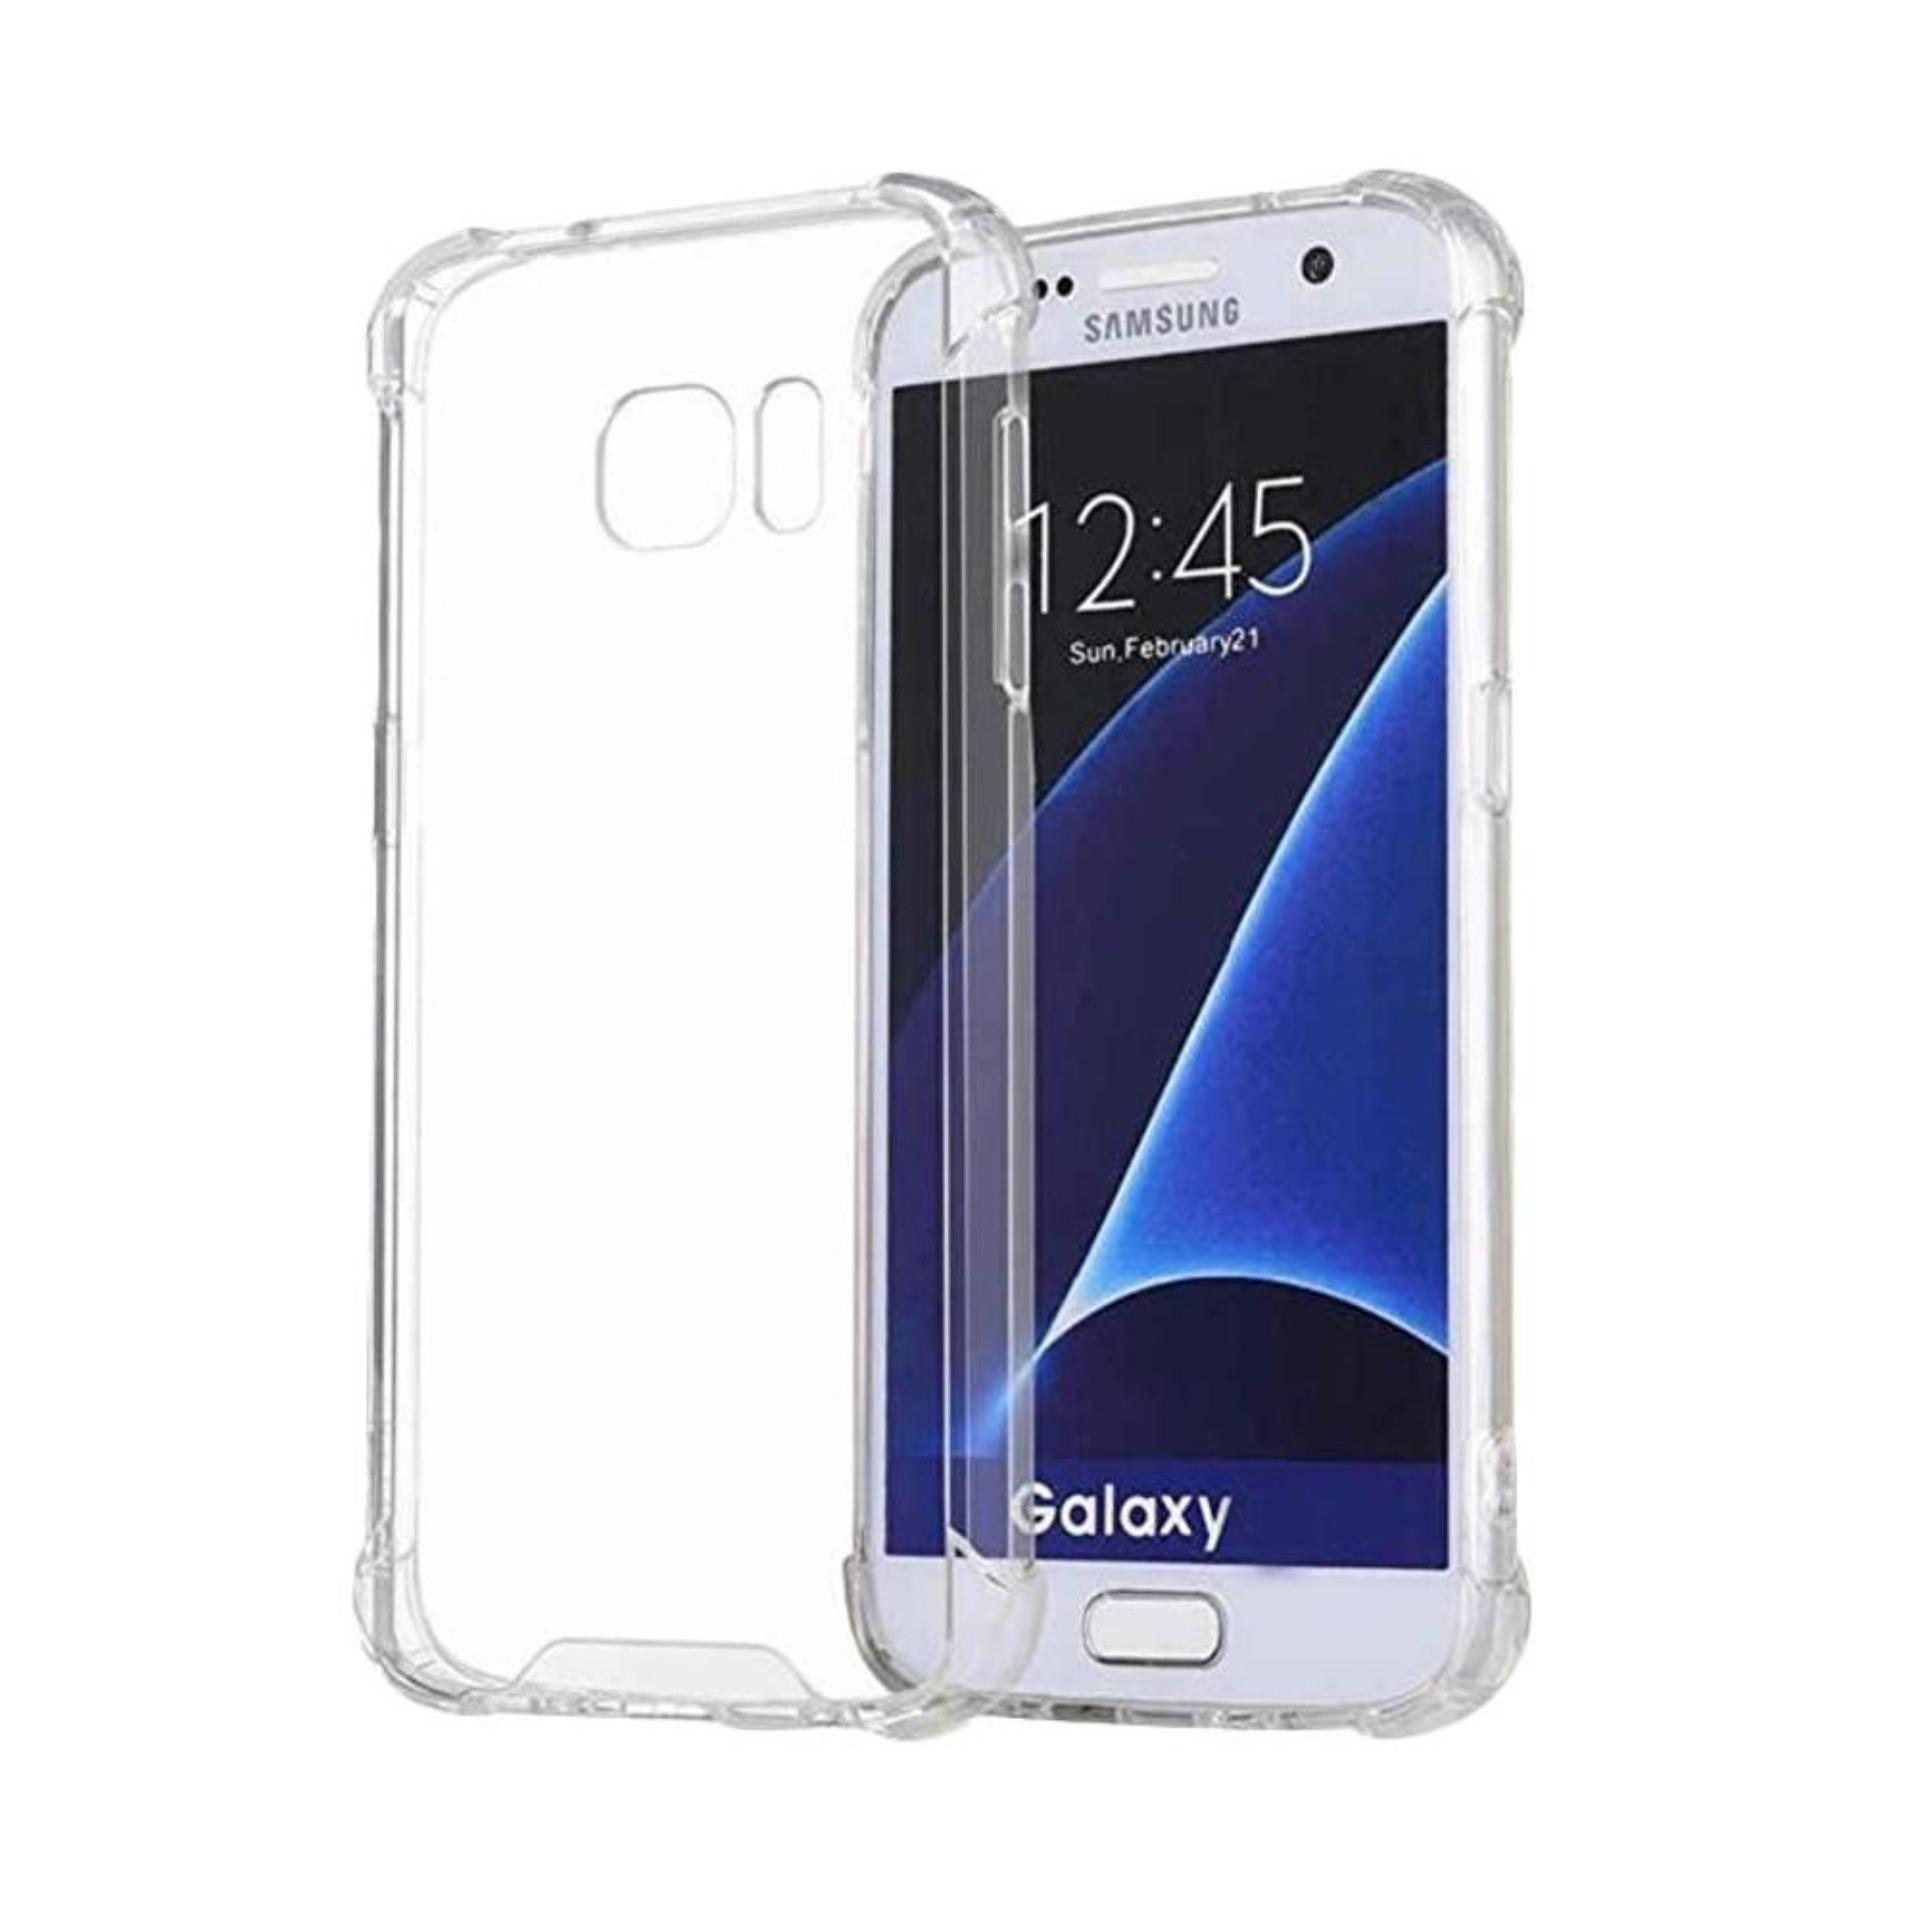 ShockCase for Samsung Galaxy S6 Flat (G920) / 4G LTE / Duos | Premium Softcase Jelly Anti Crack Shockproof - Transparan